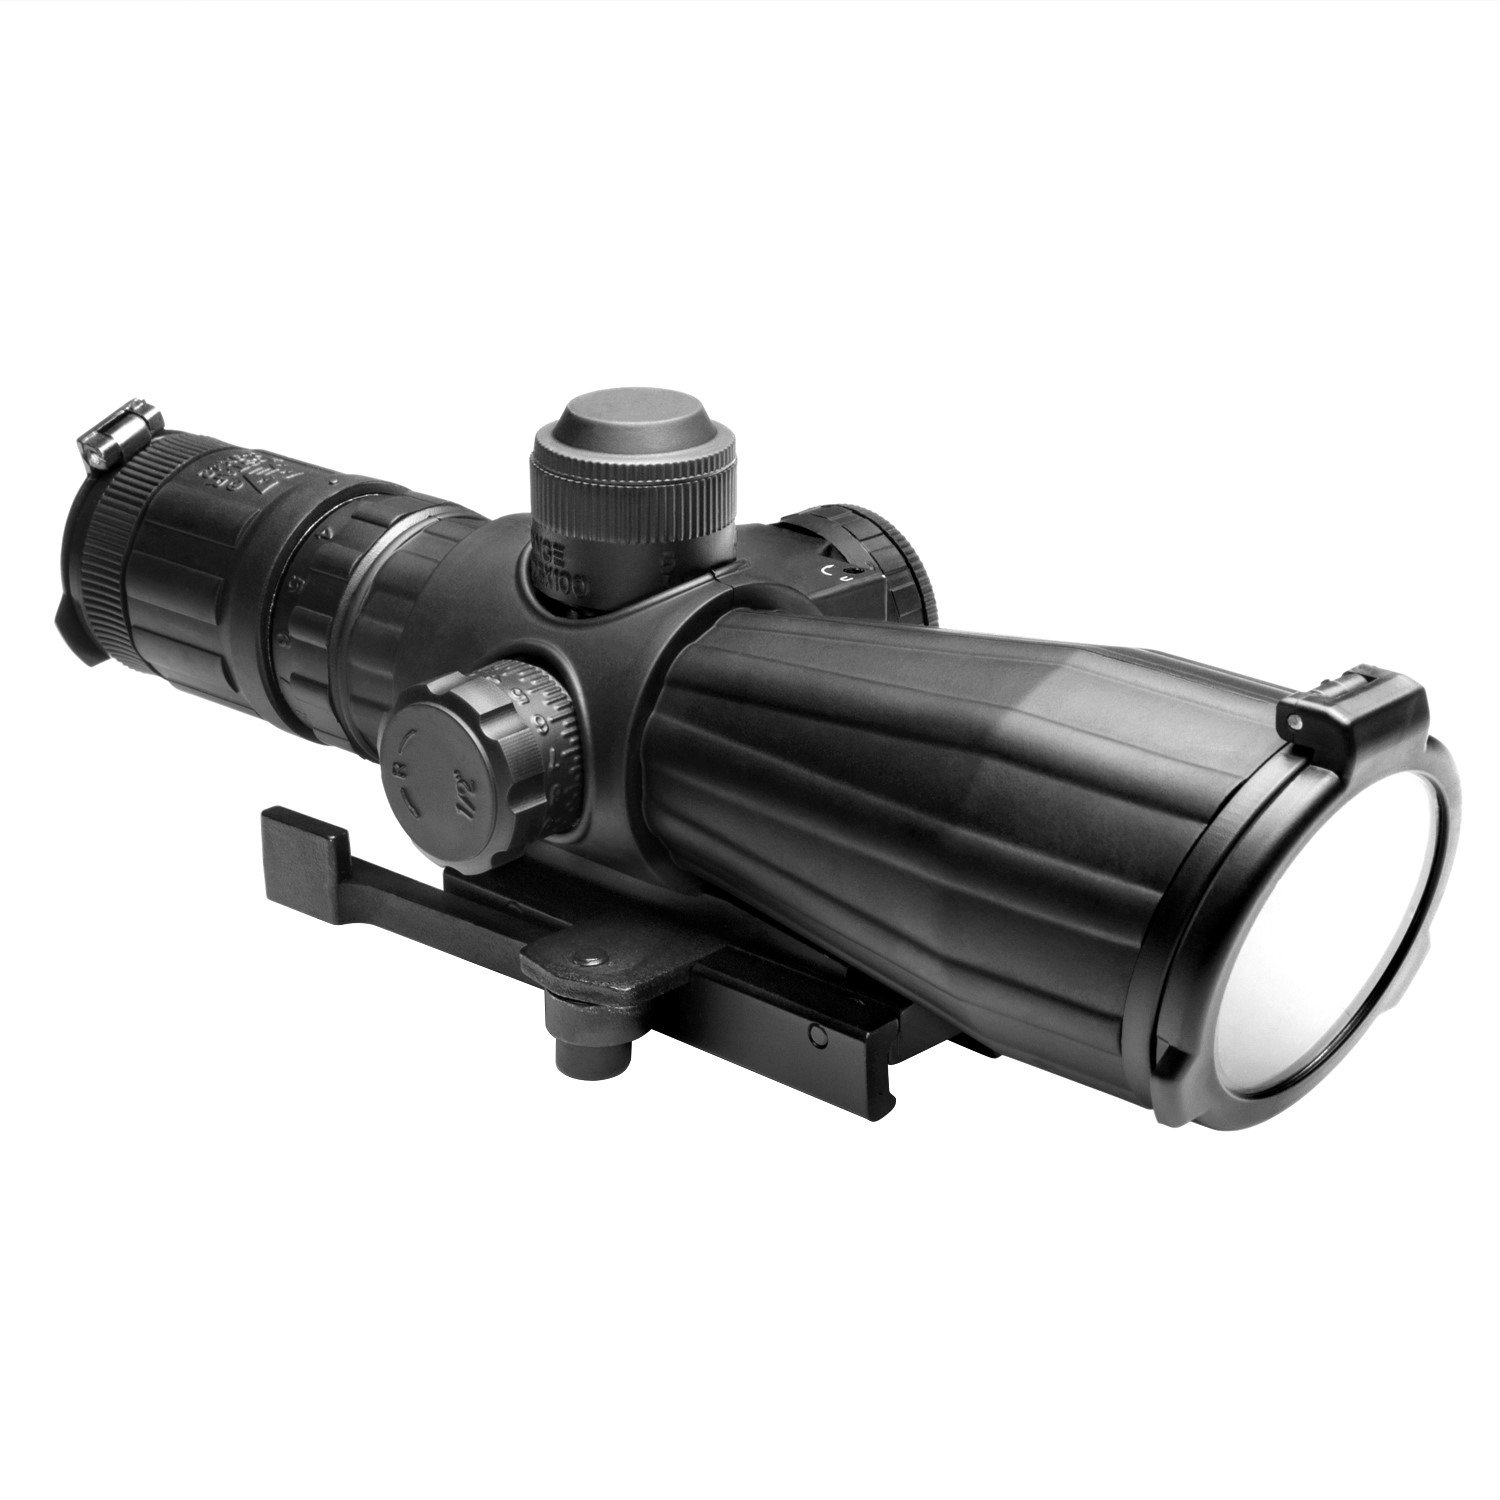 NcSTAR 3-9 X 42 Rubber Compact with Red Laser/Green Lens Illuminated Rangefinder Scope (SRTR3942G)